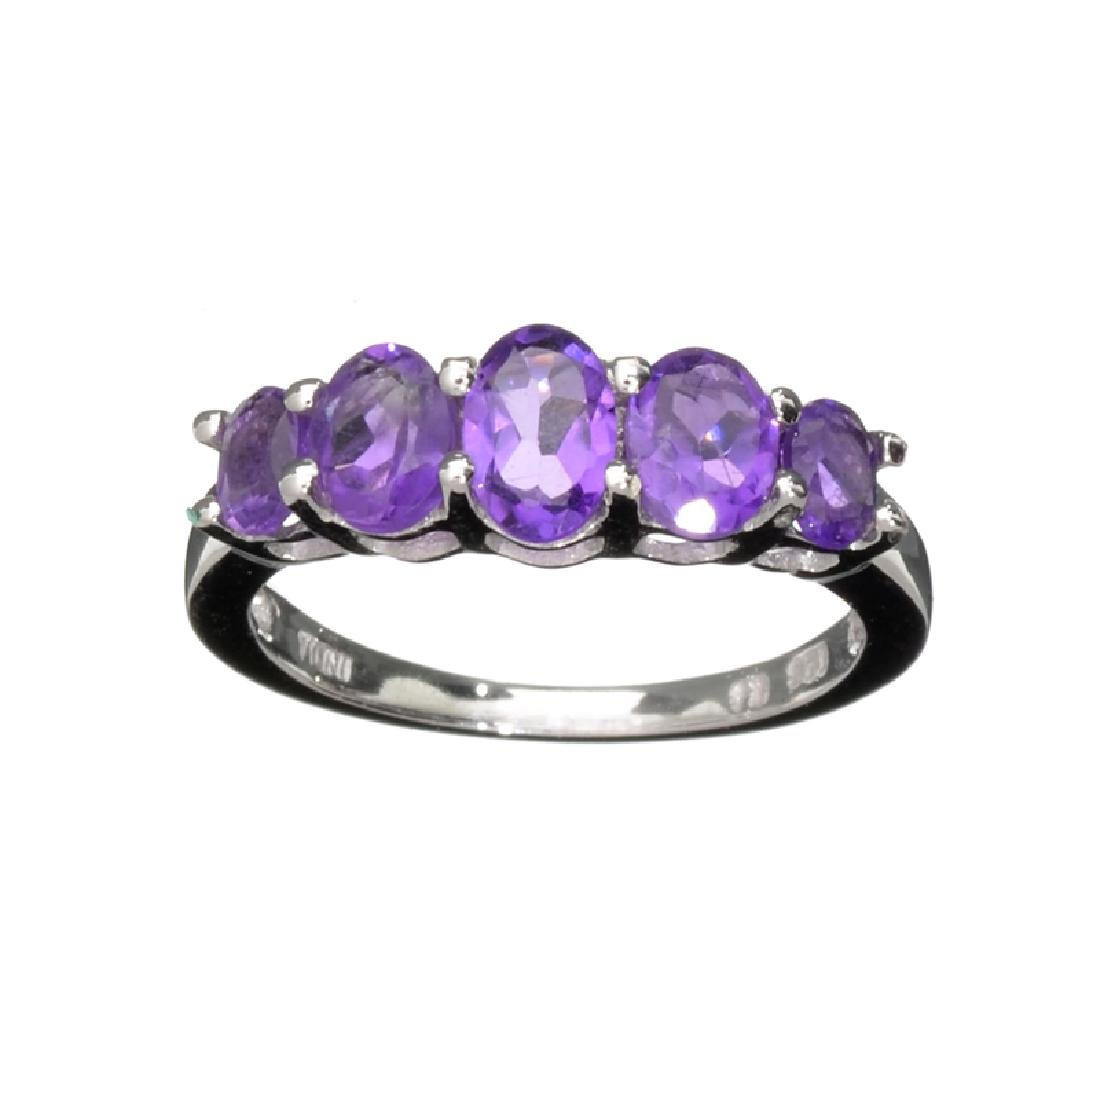 APP: 0.8k Fine Jewelry 1.75CT Oval Cut Purple Amethyst